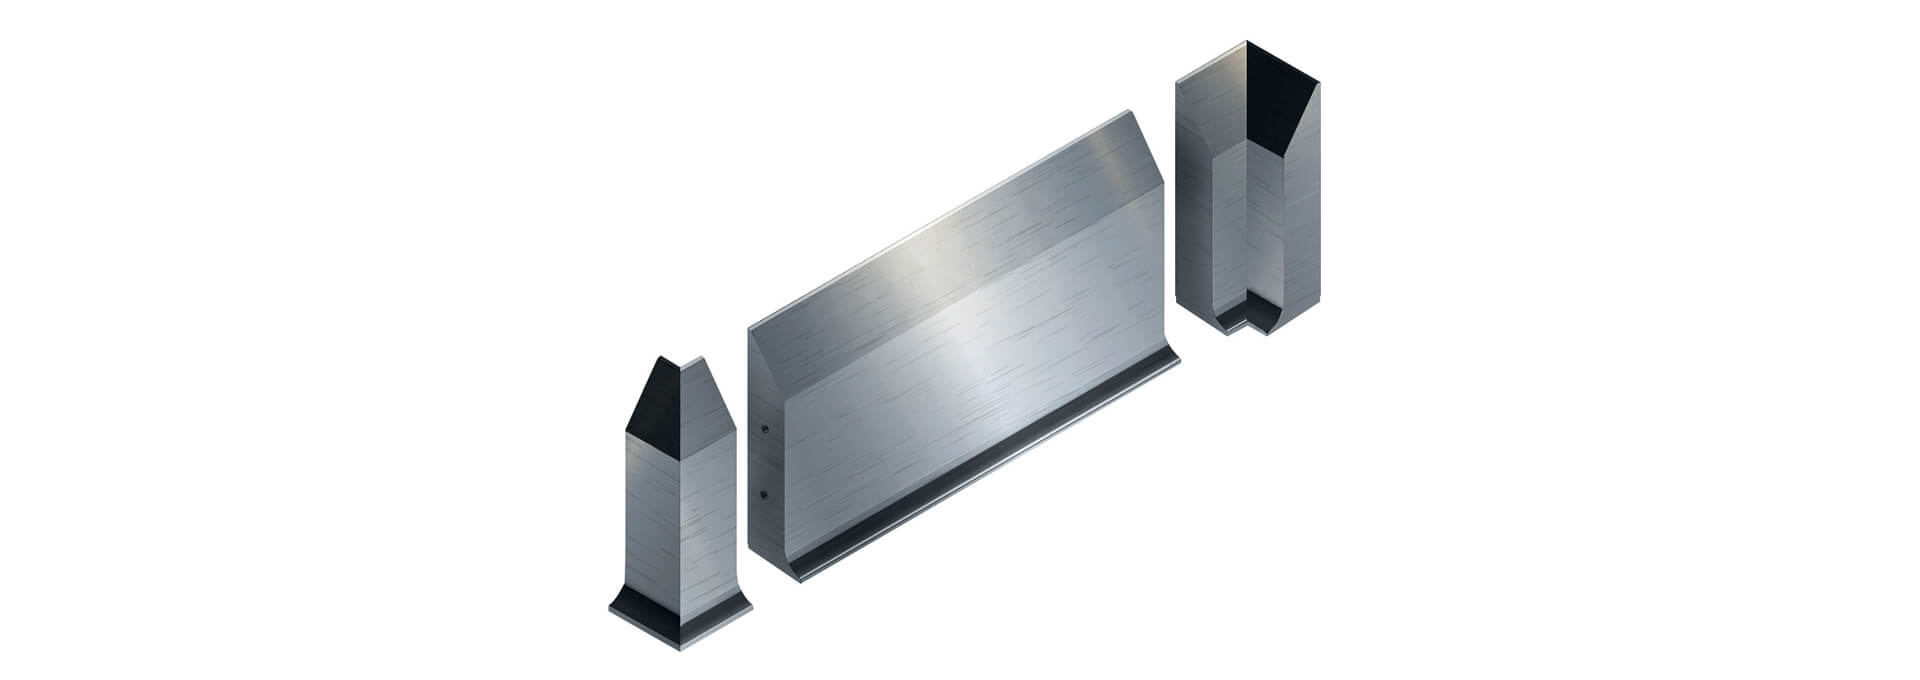 Stainless Steel Hygienic Kerb HBKOSS515100-00